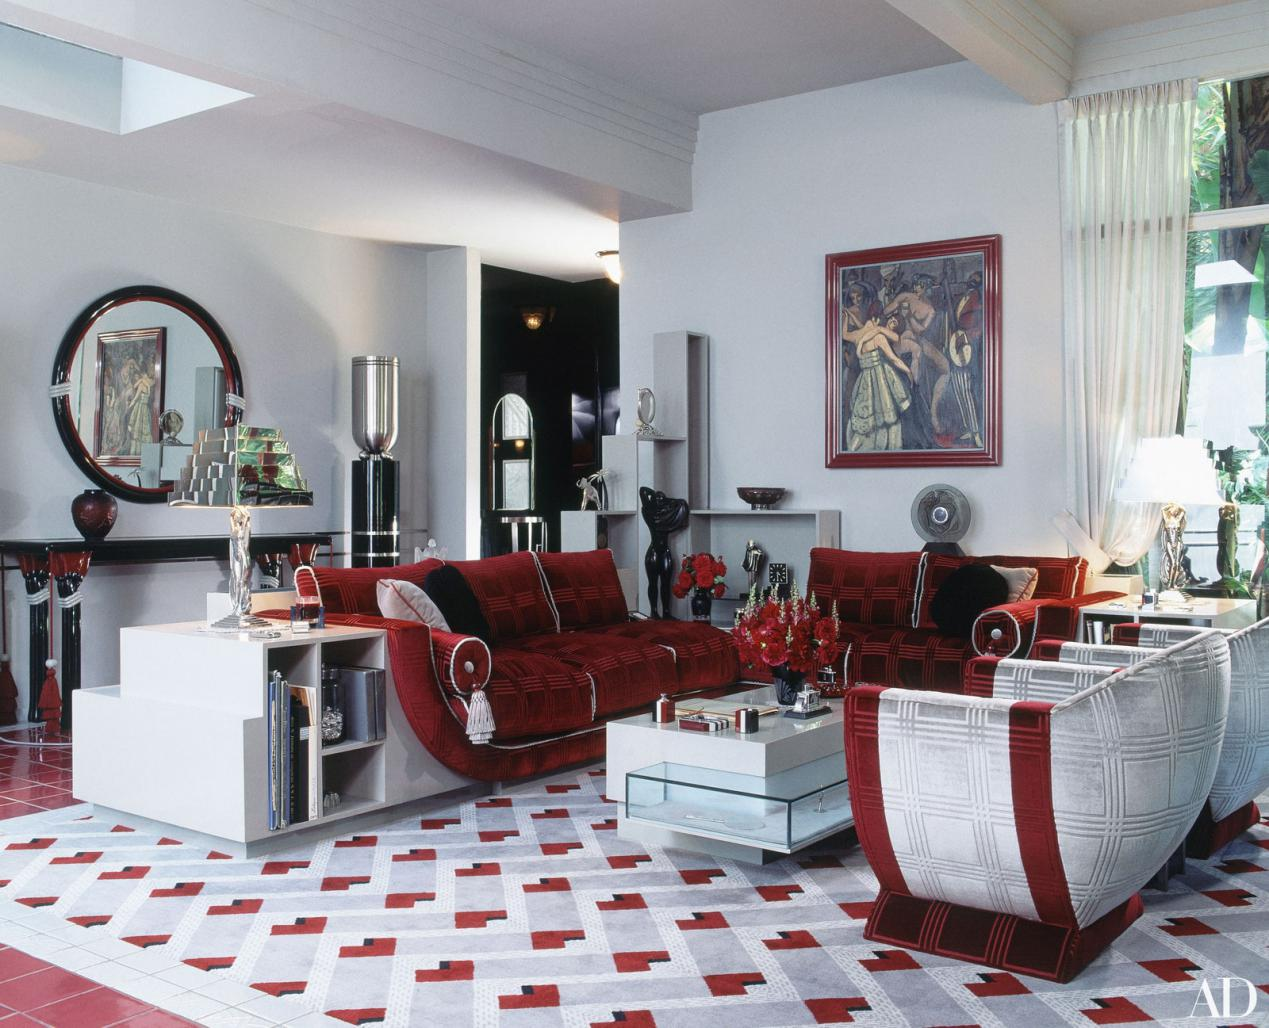 Living Room in Red and White Tones